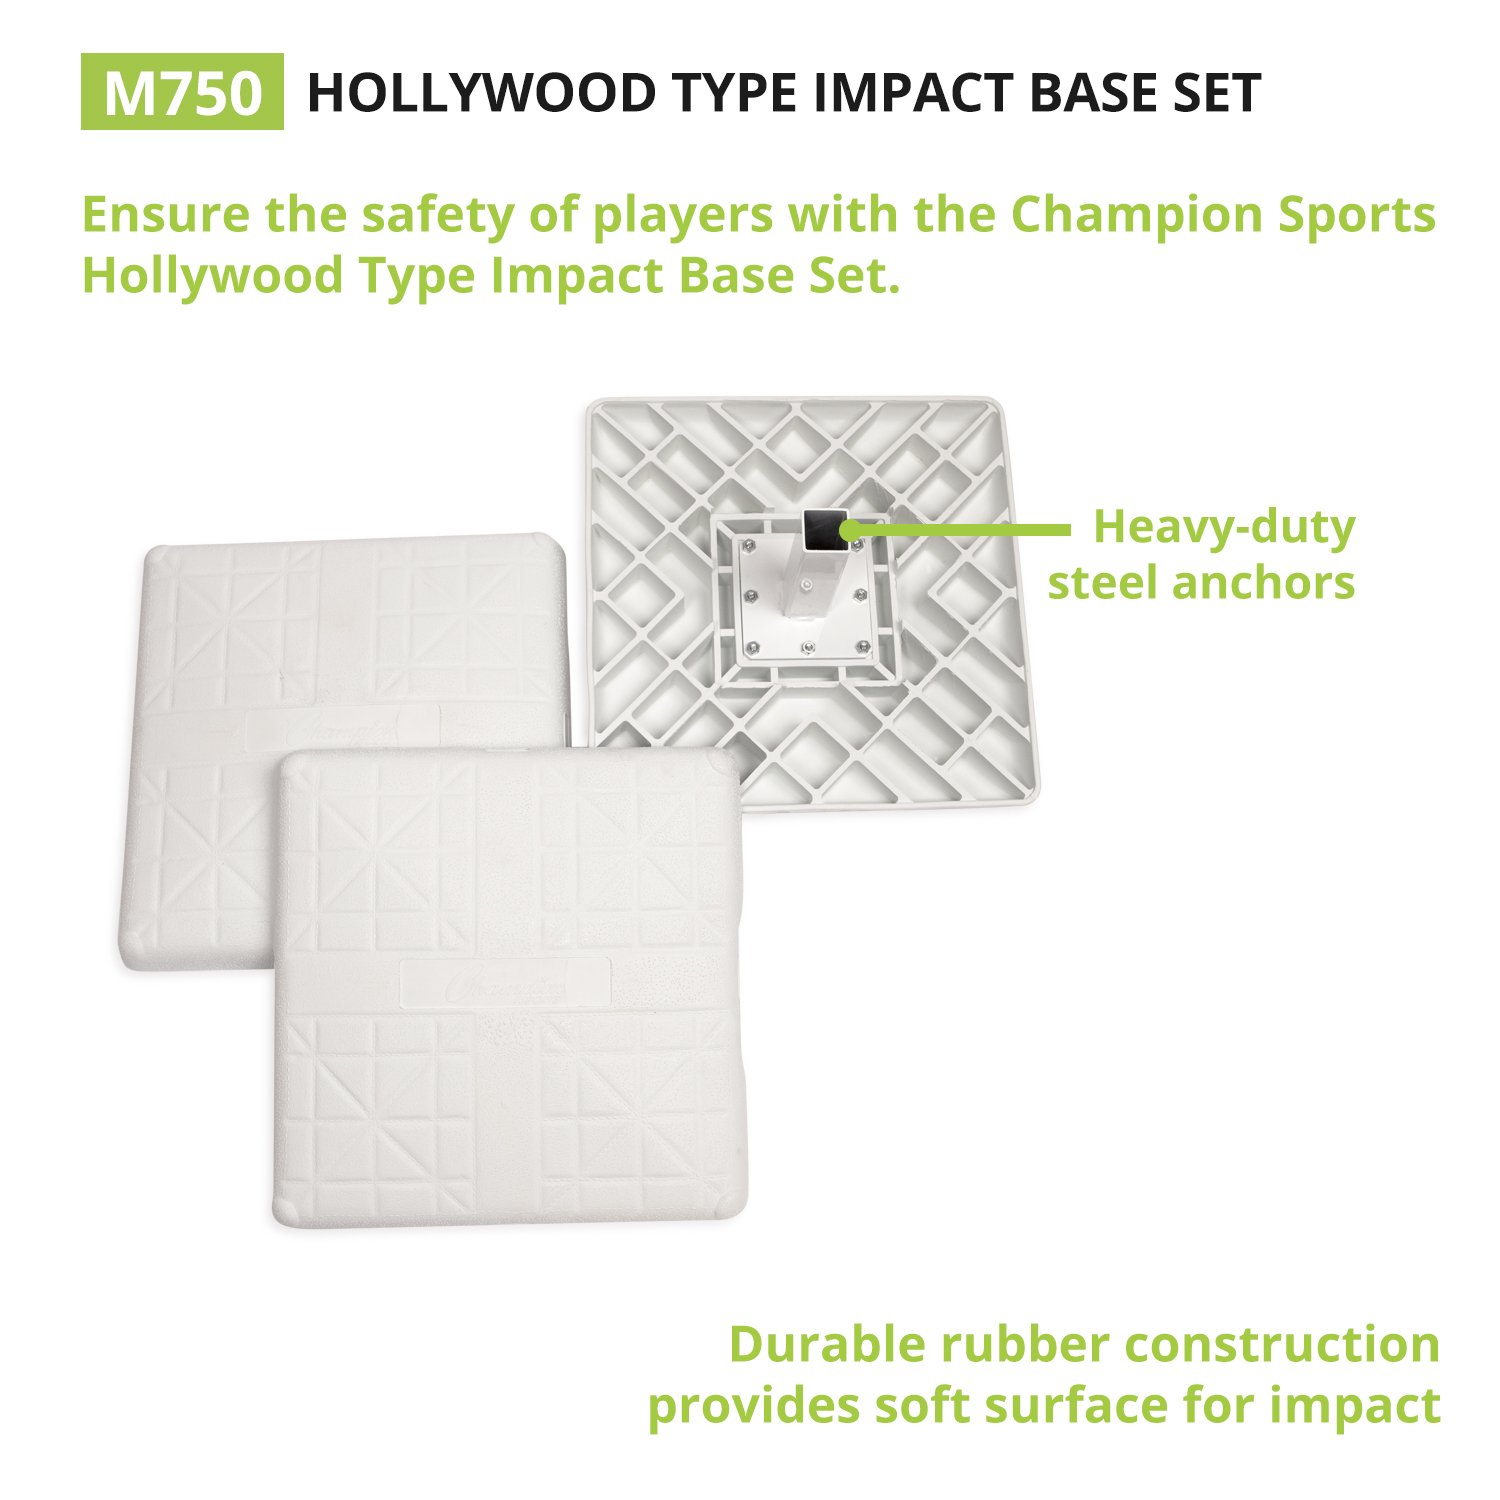 Champion Sports Impact Baseball Bases: Hollywood Type Safety Collapsible Bases with Anchor Plug - Sports Equipment Bags for Youth Baseball & Softball by Champion Sports (Image #2)